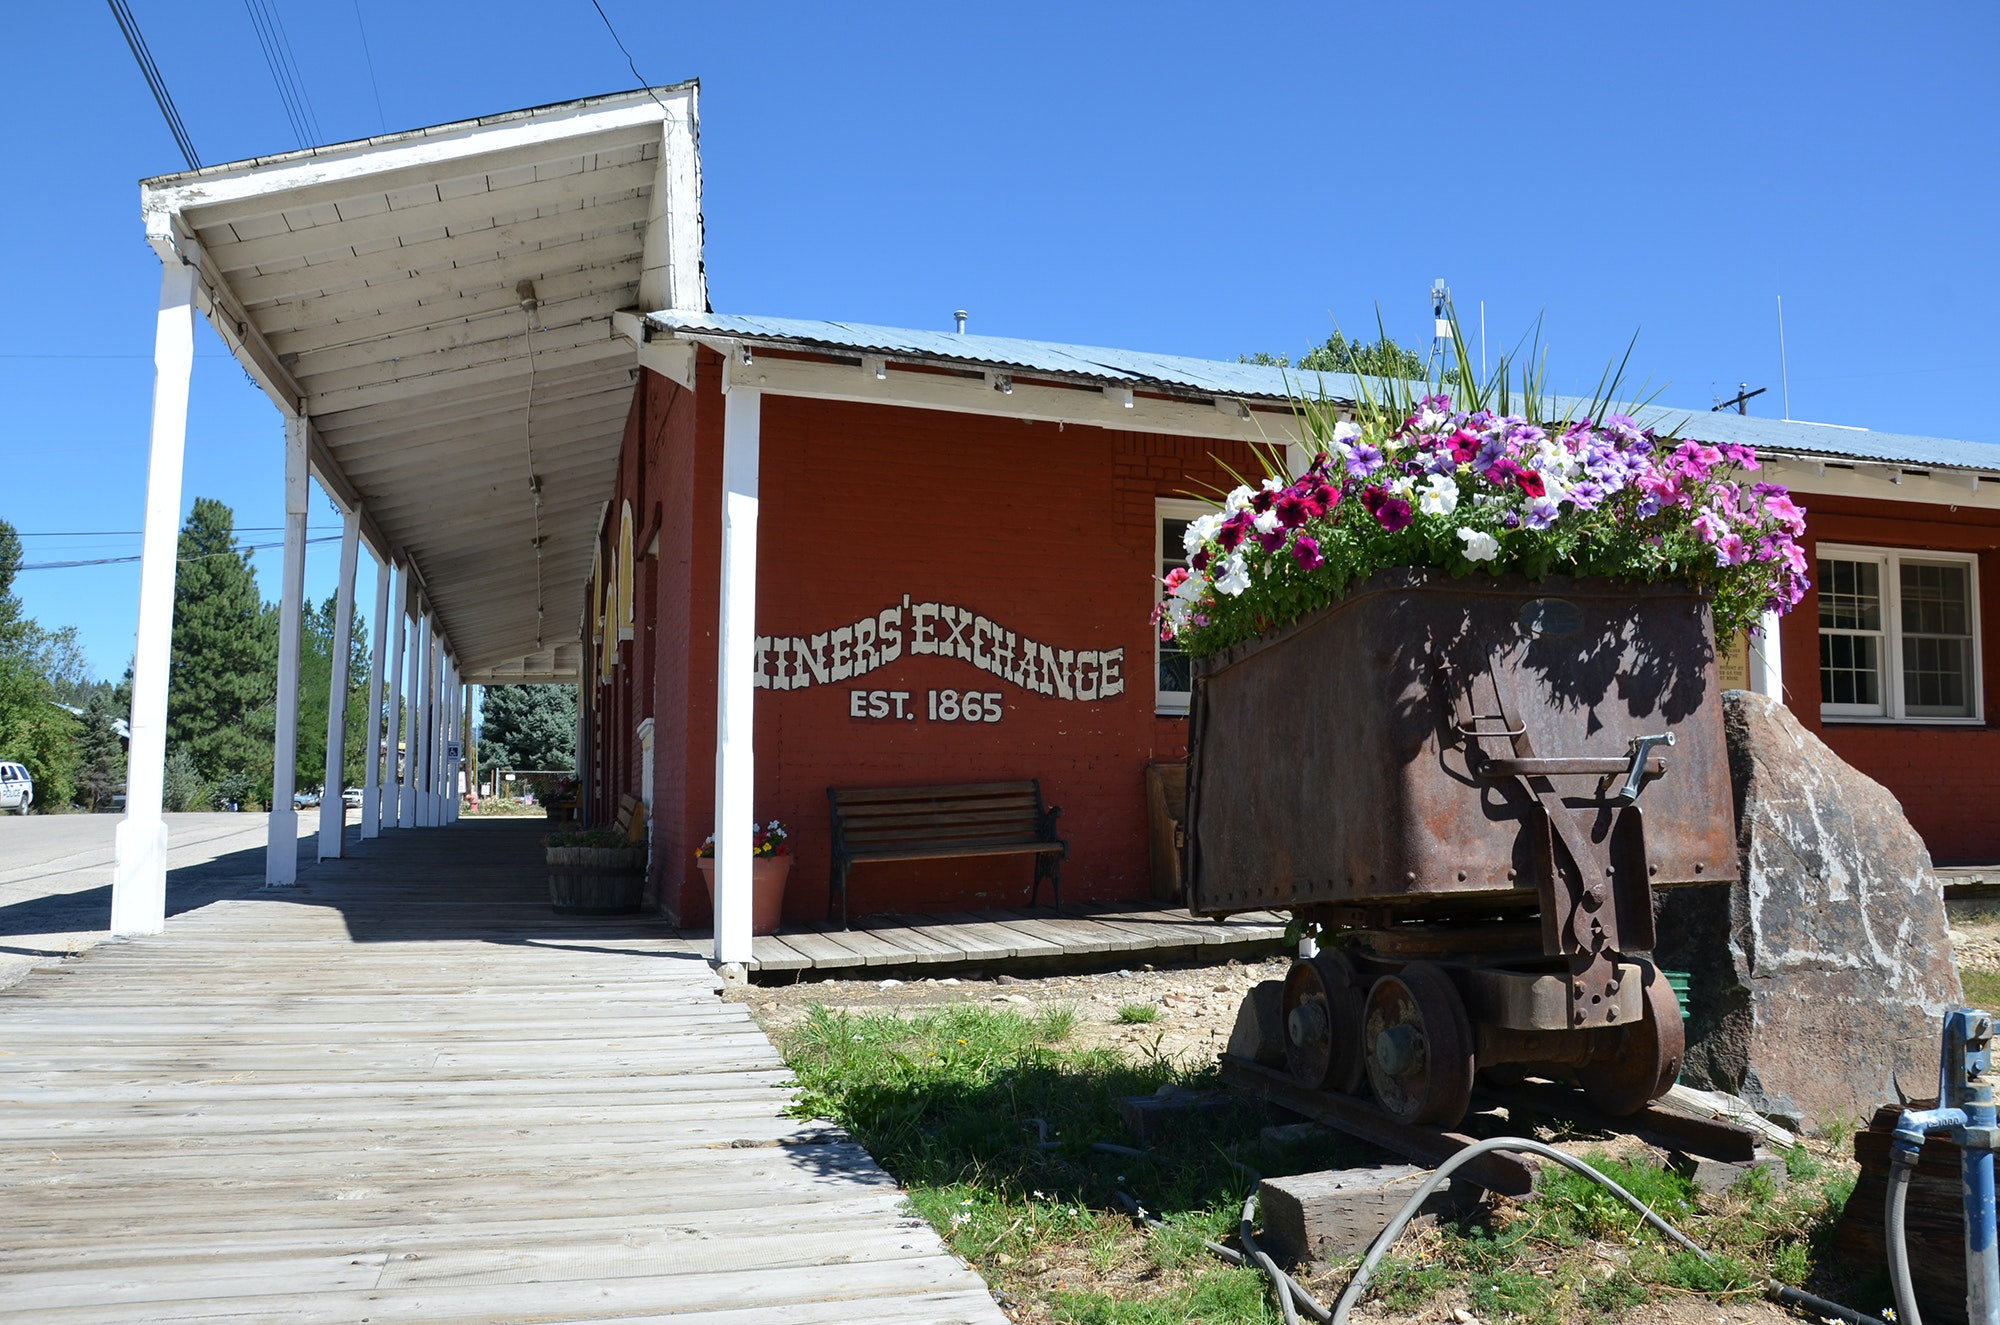 With its boardwalks and dusty streets, Idaho City is a preserved mining town from the 1800s.